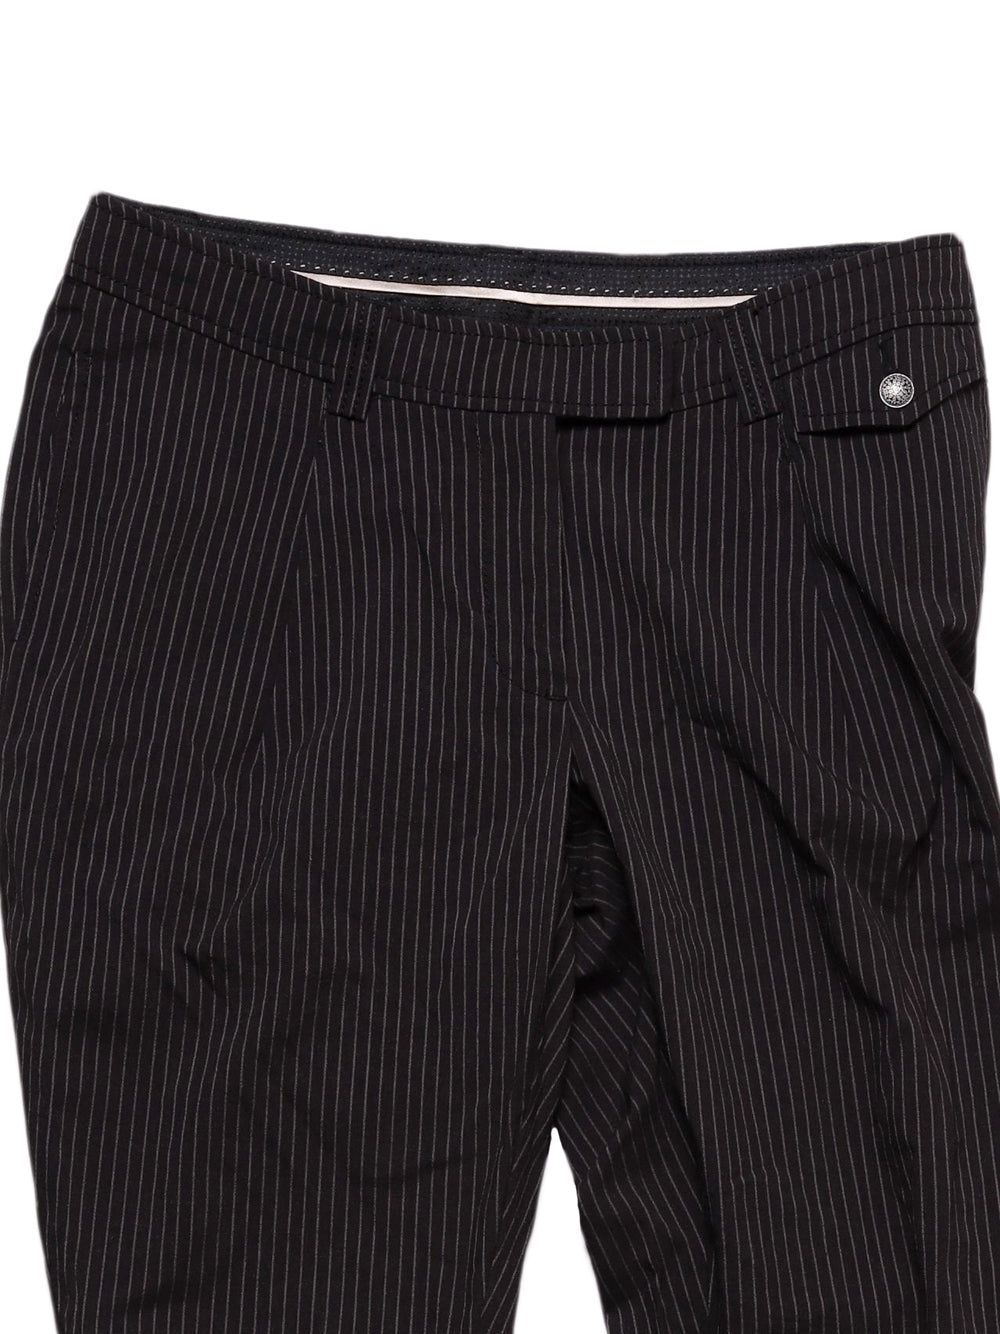 Detail photo of Preloved Stefanel Black Woman's trousers - size 12/L